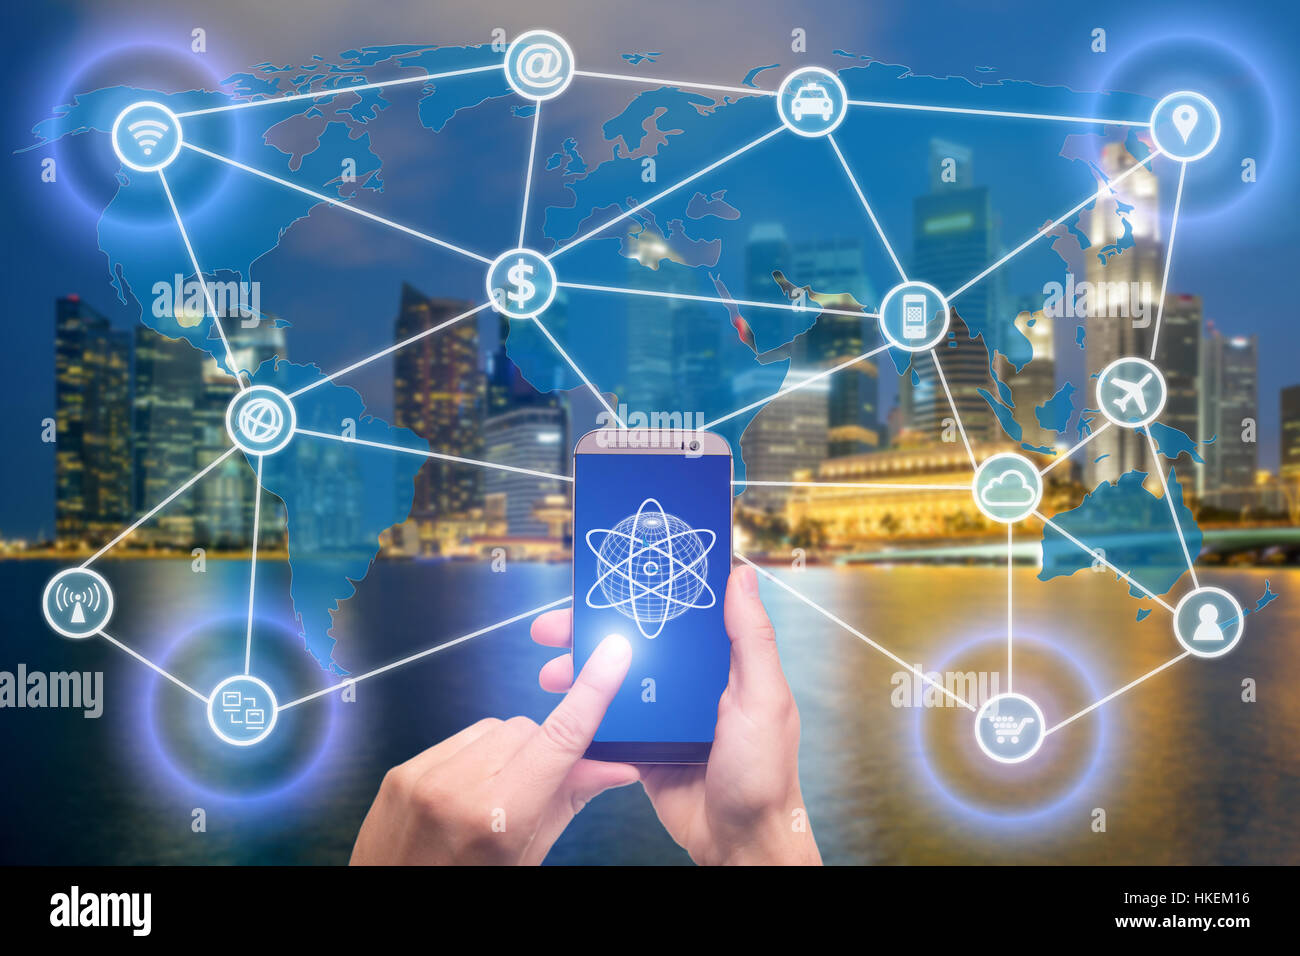 Network of connected mobile devices such as smart phone, tablet, thermostat or smart home. Internet of things and - Stock Image